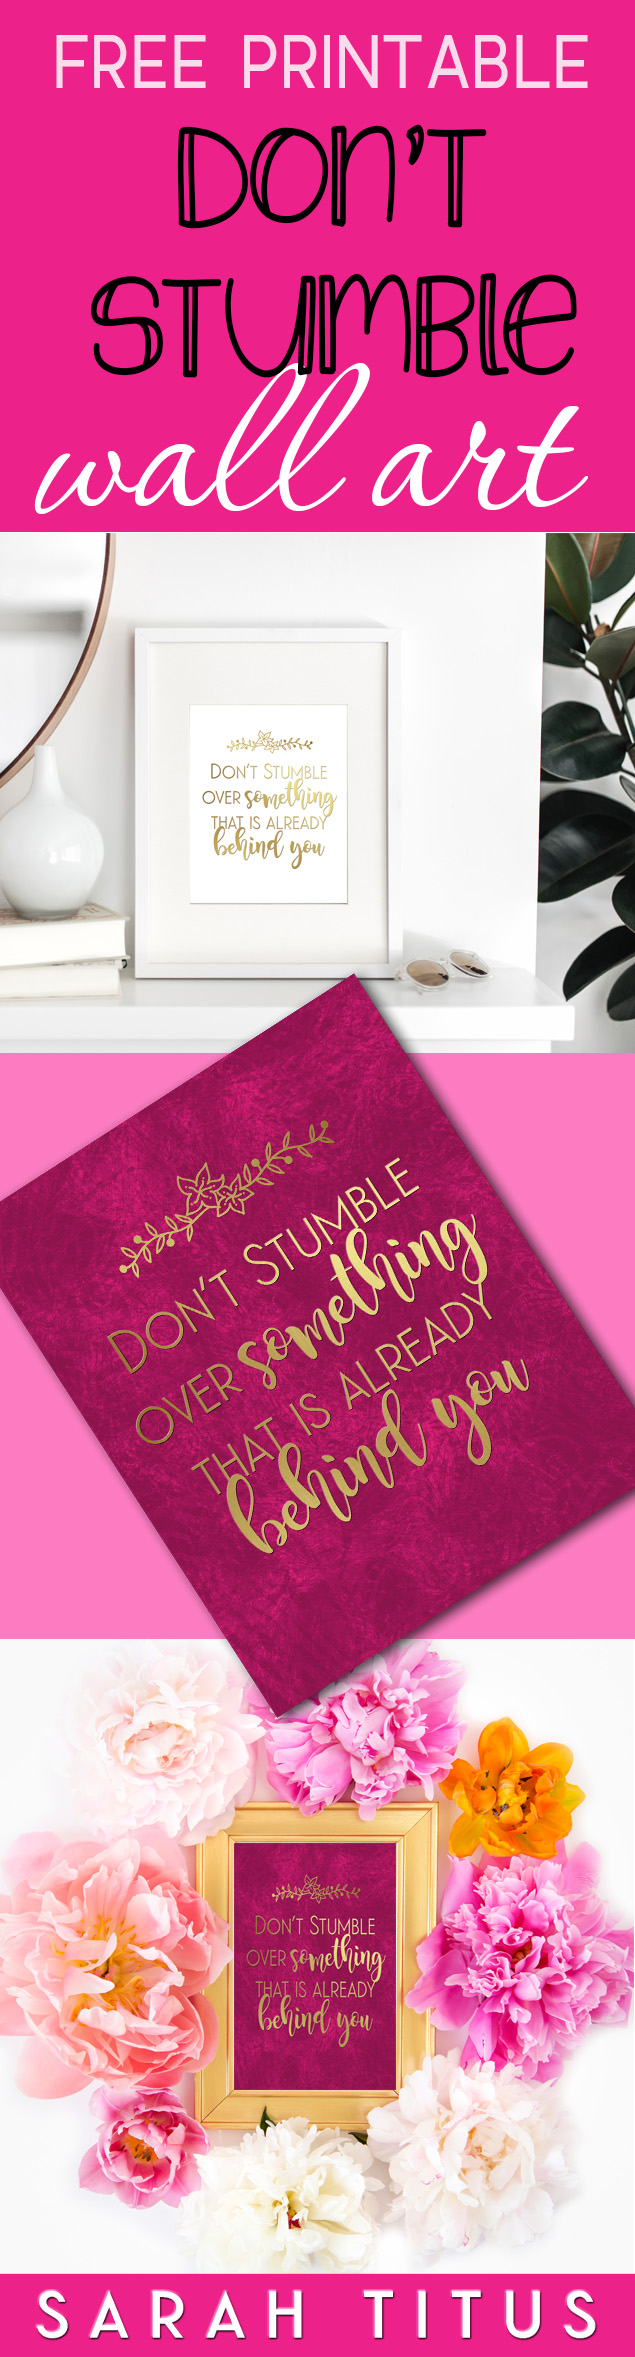 Don't stumble over something that is already behind you wall art free printable. This don't stumble wall art printable will add beauty, color, and whimsy to your space! #wallartprintable #freewallartprintables #dontstumble #quotewallart #wallart